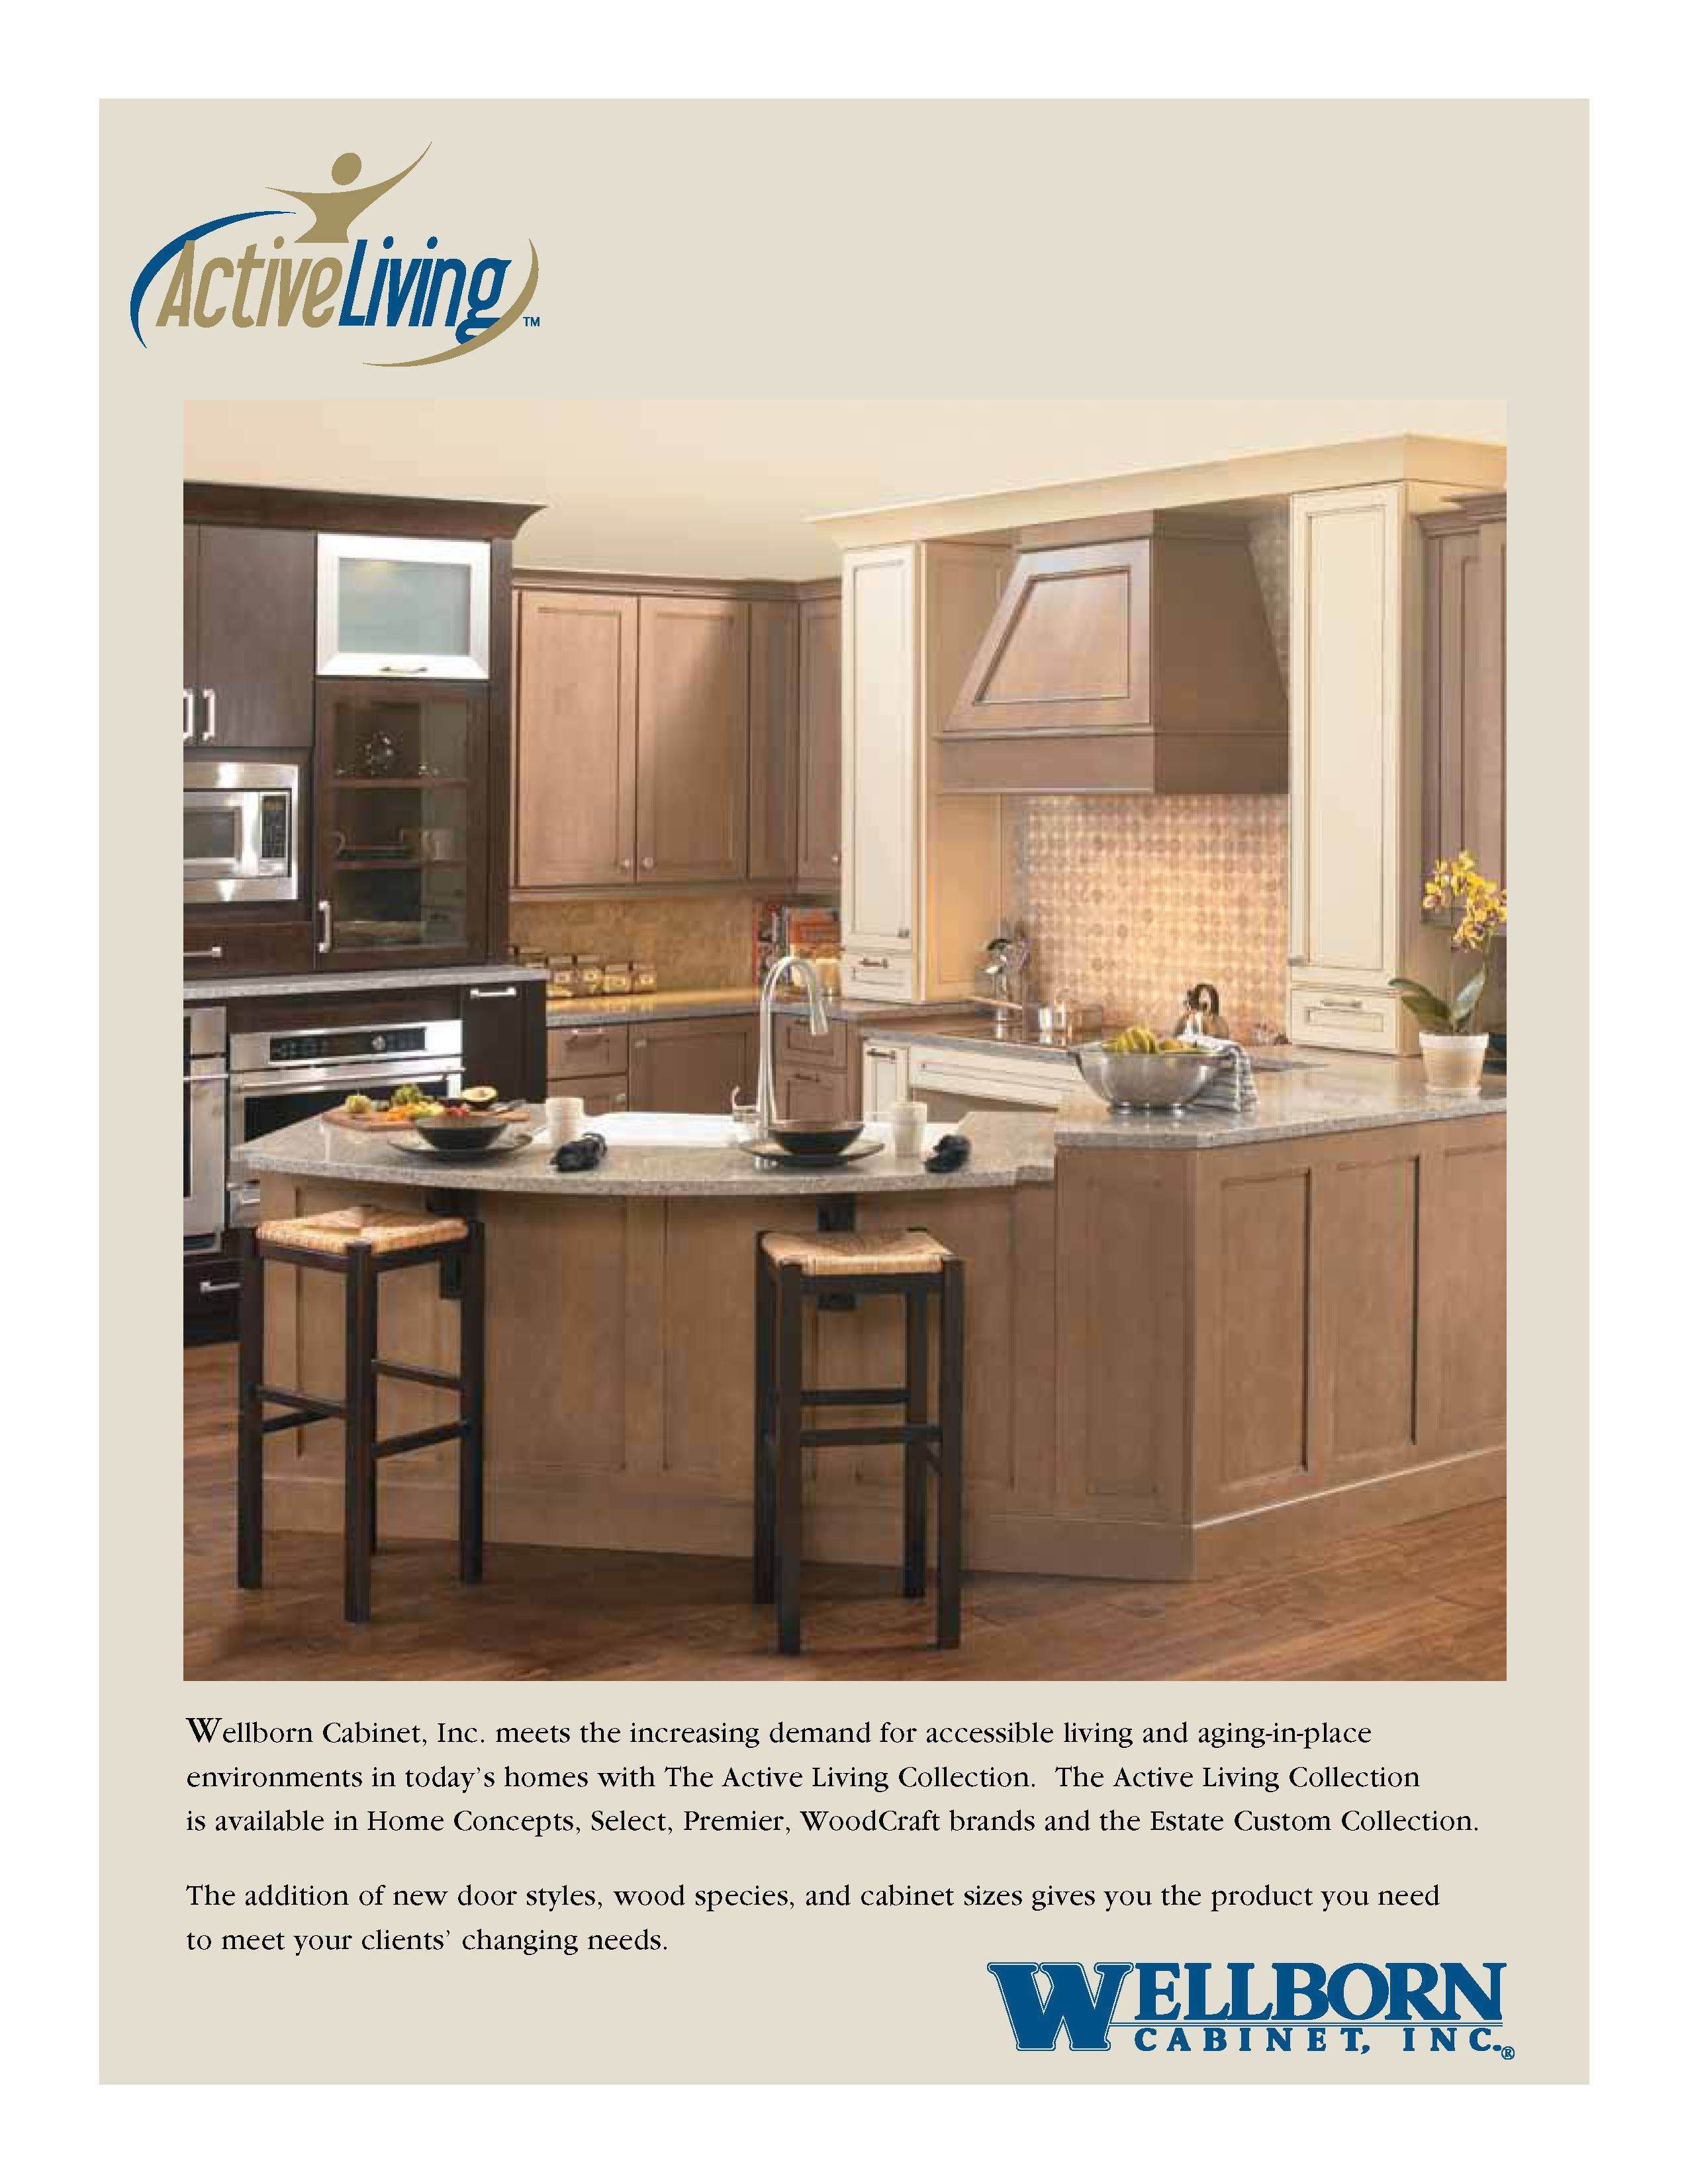 The Wellborn Family Is Committed To Be The Most Valued Provider Of  Permanent Home Kitchen And Bath Cabinetry Designed For A Lifetime Of  Gracious Living.